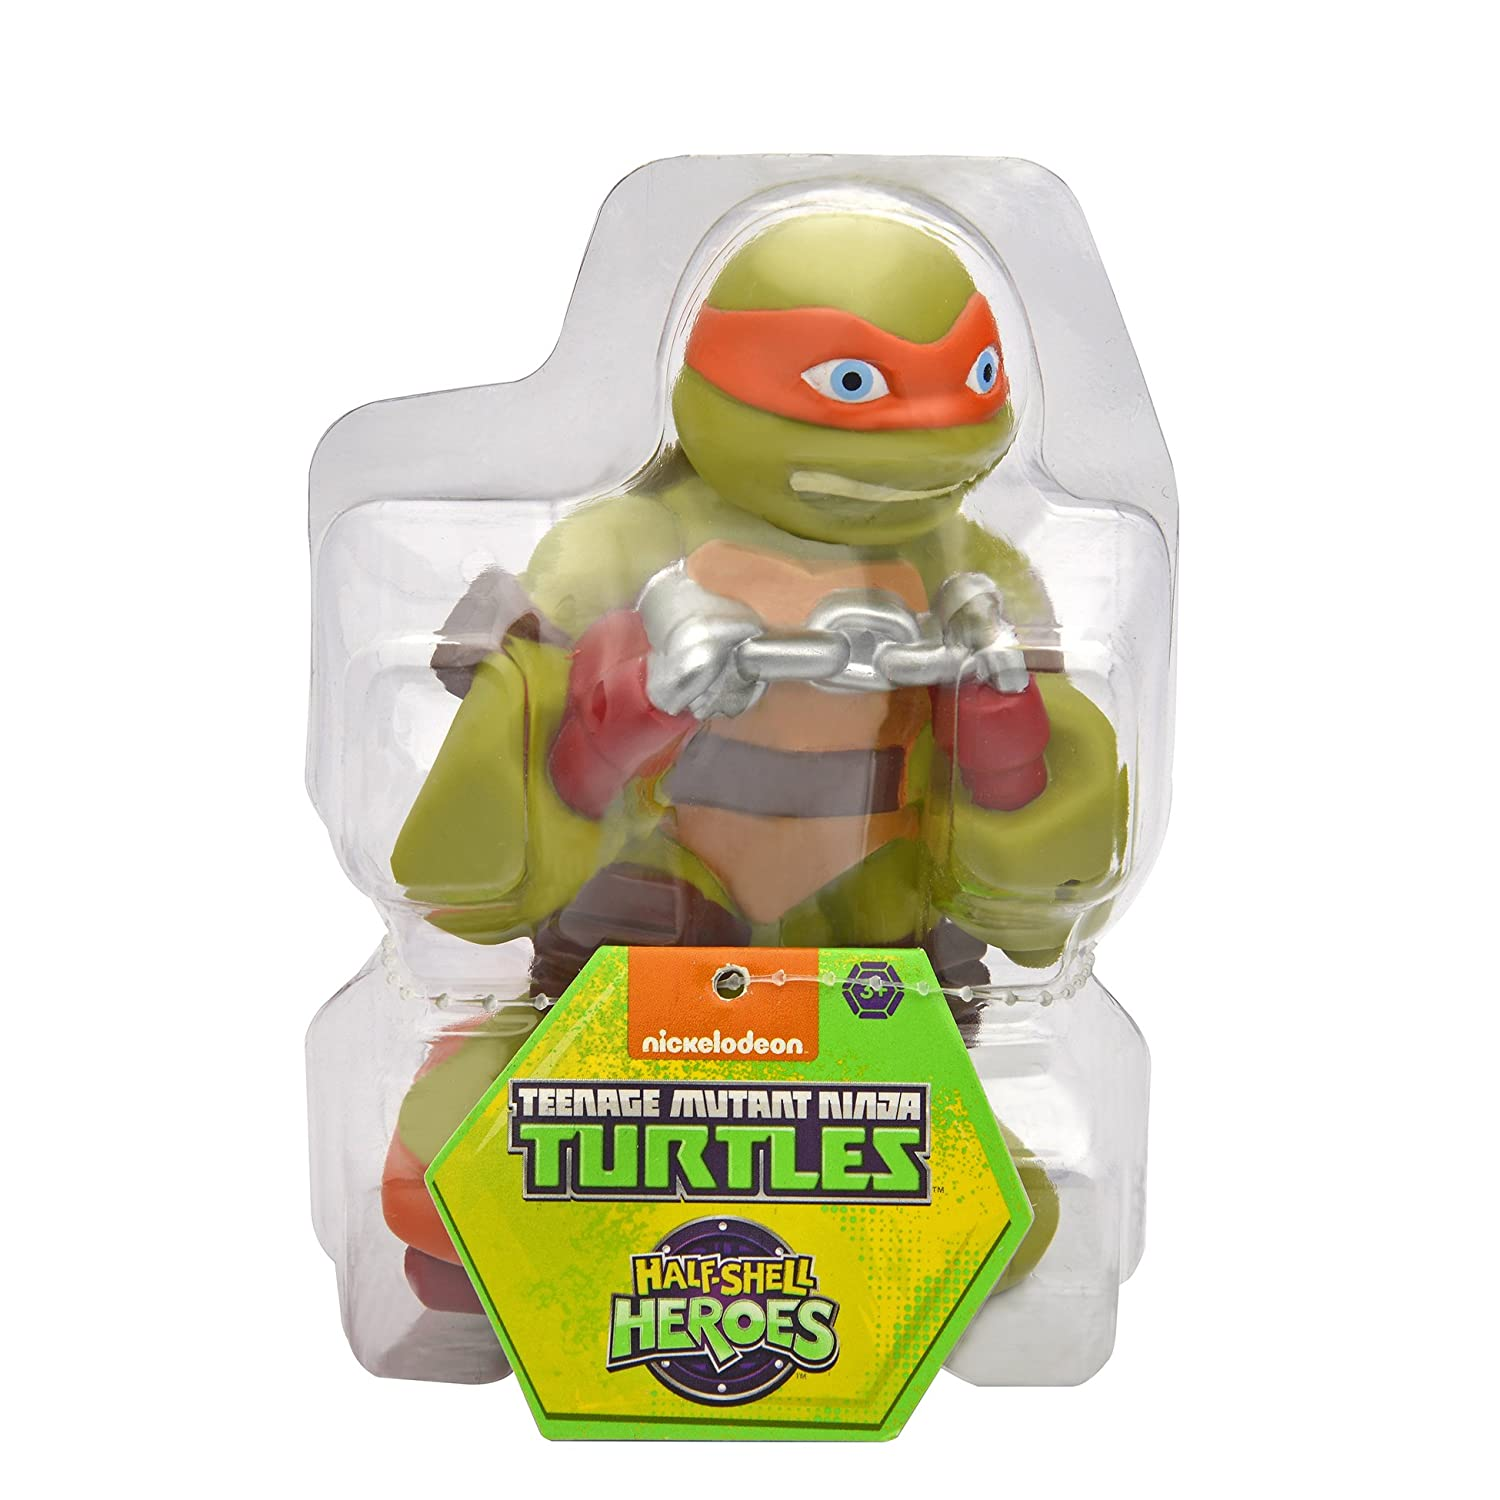 Teenage Mutant Ninja Turtles Pre-Cool Half Shell Heroes ...